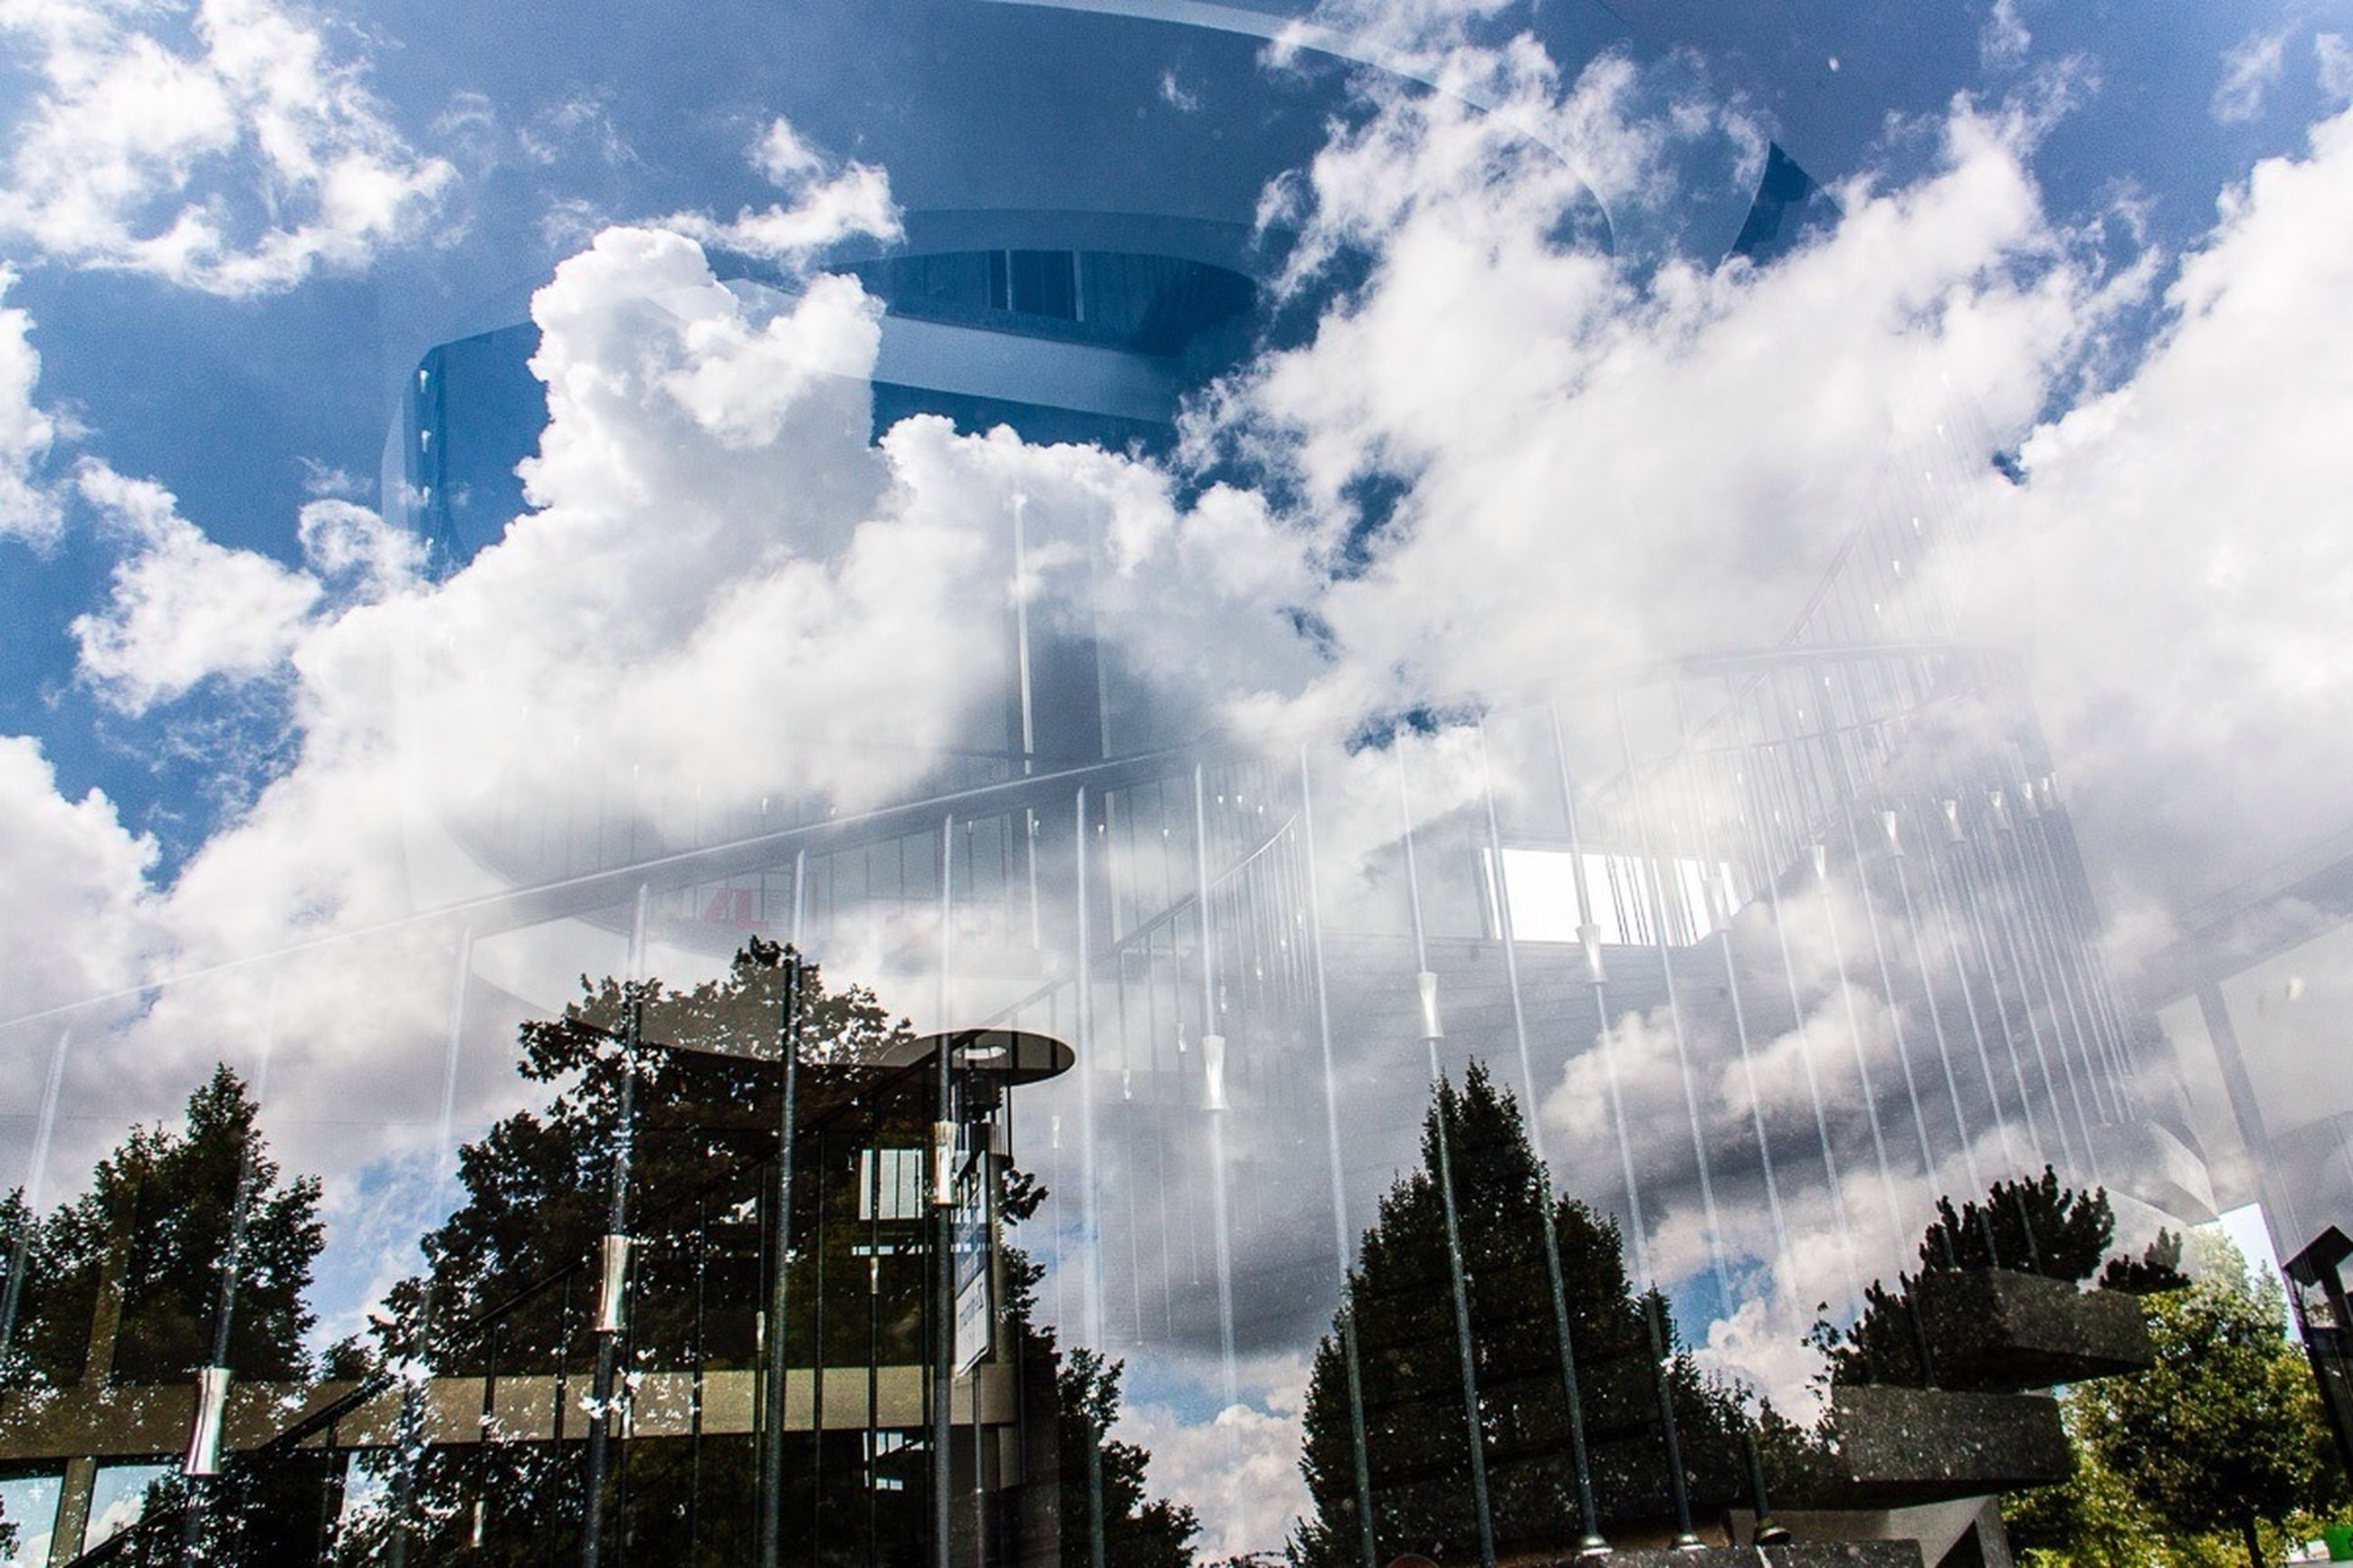 built structure, architecture, sky, building exterior, cloud - sky, tree, cloudy, low angle view, glass - material, city, modern, cloud, day, building, reflection, weather, travel destinations, outdoors, no people, travel